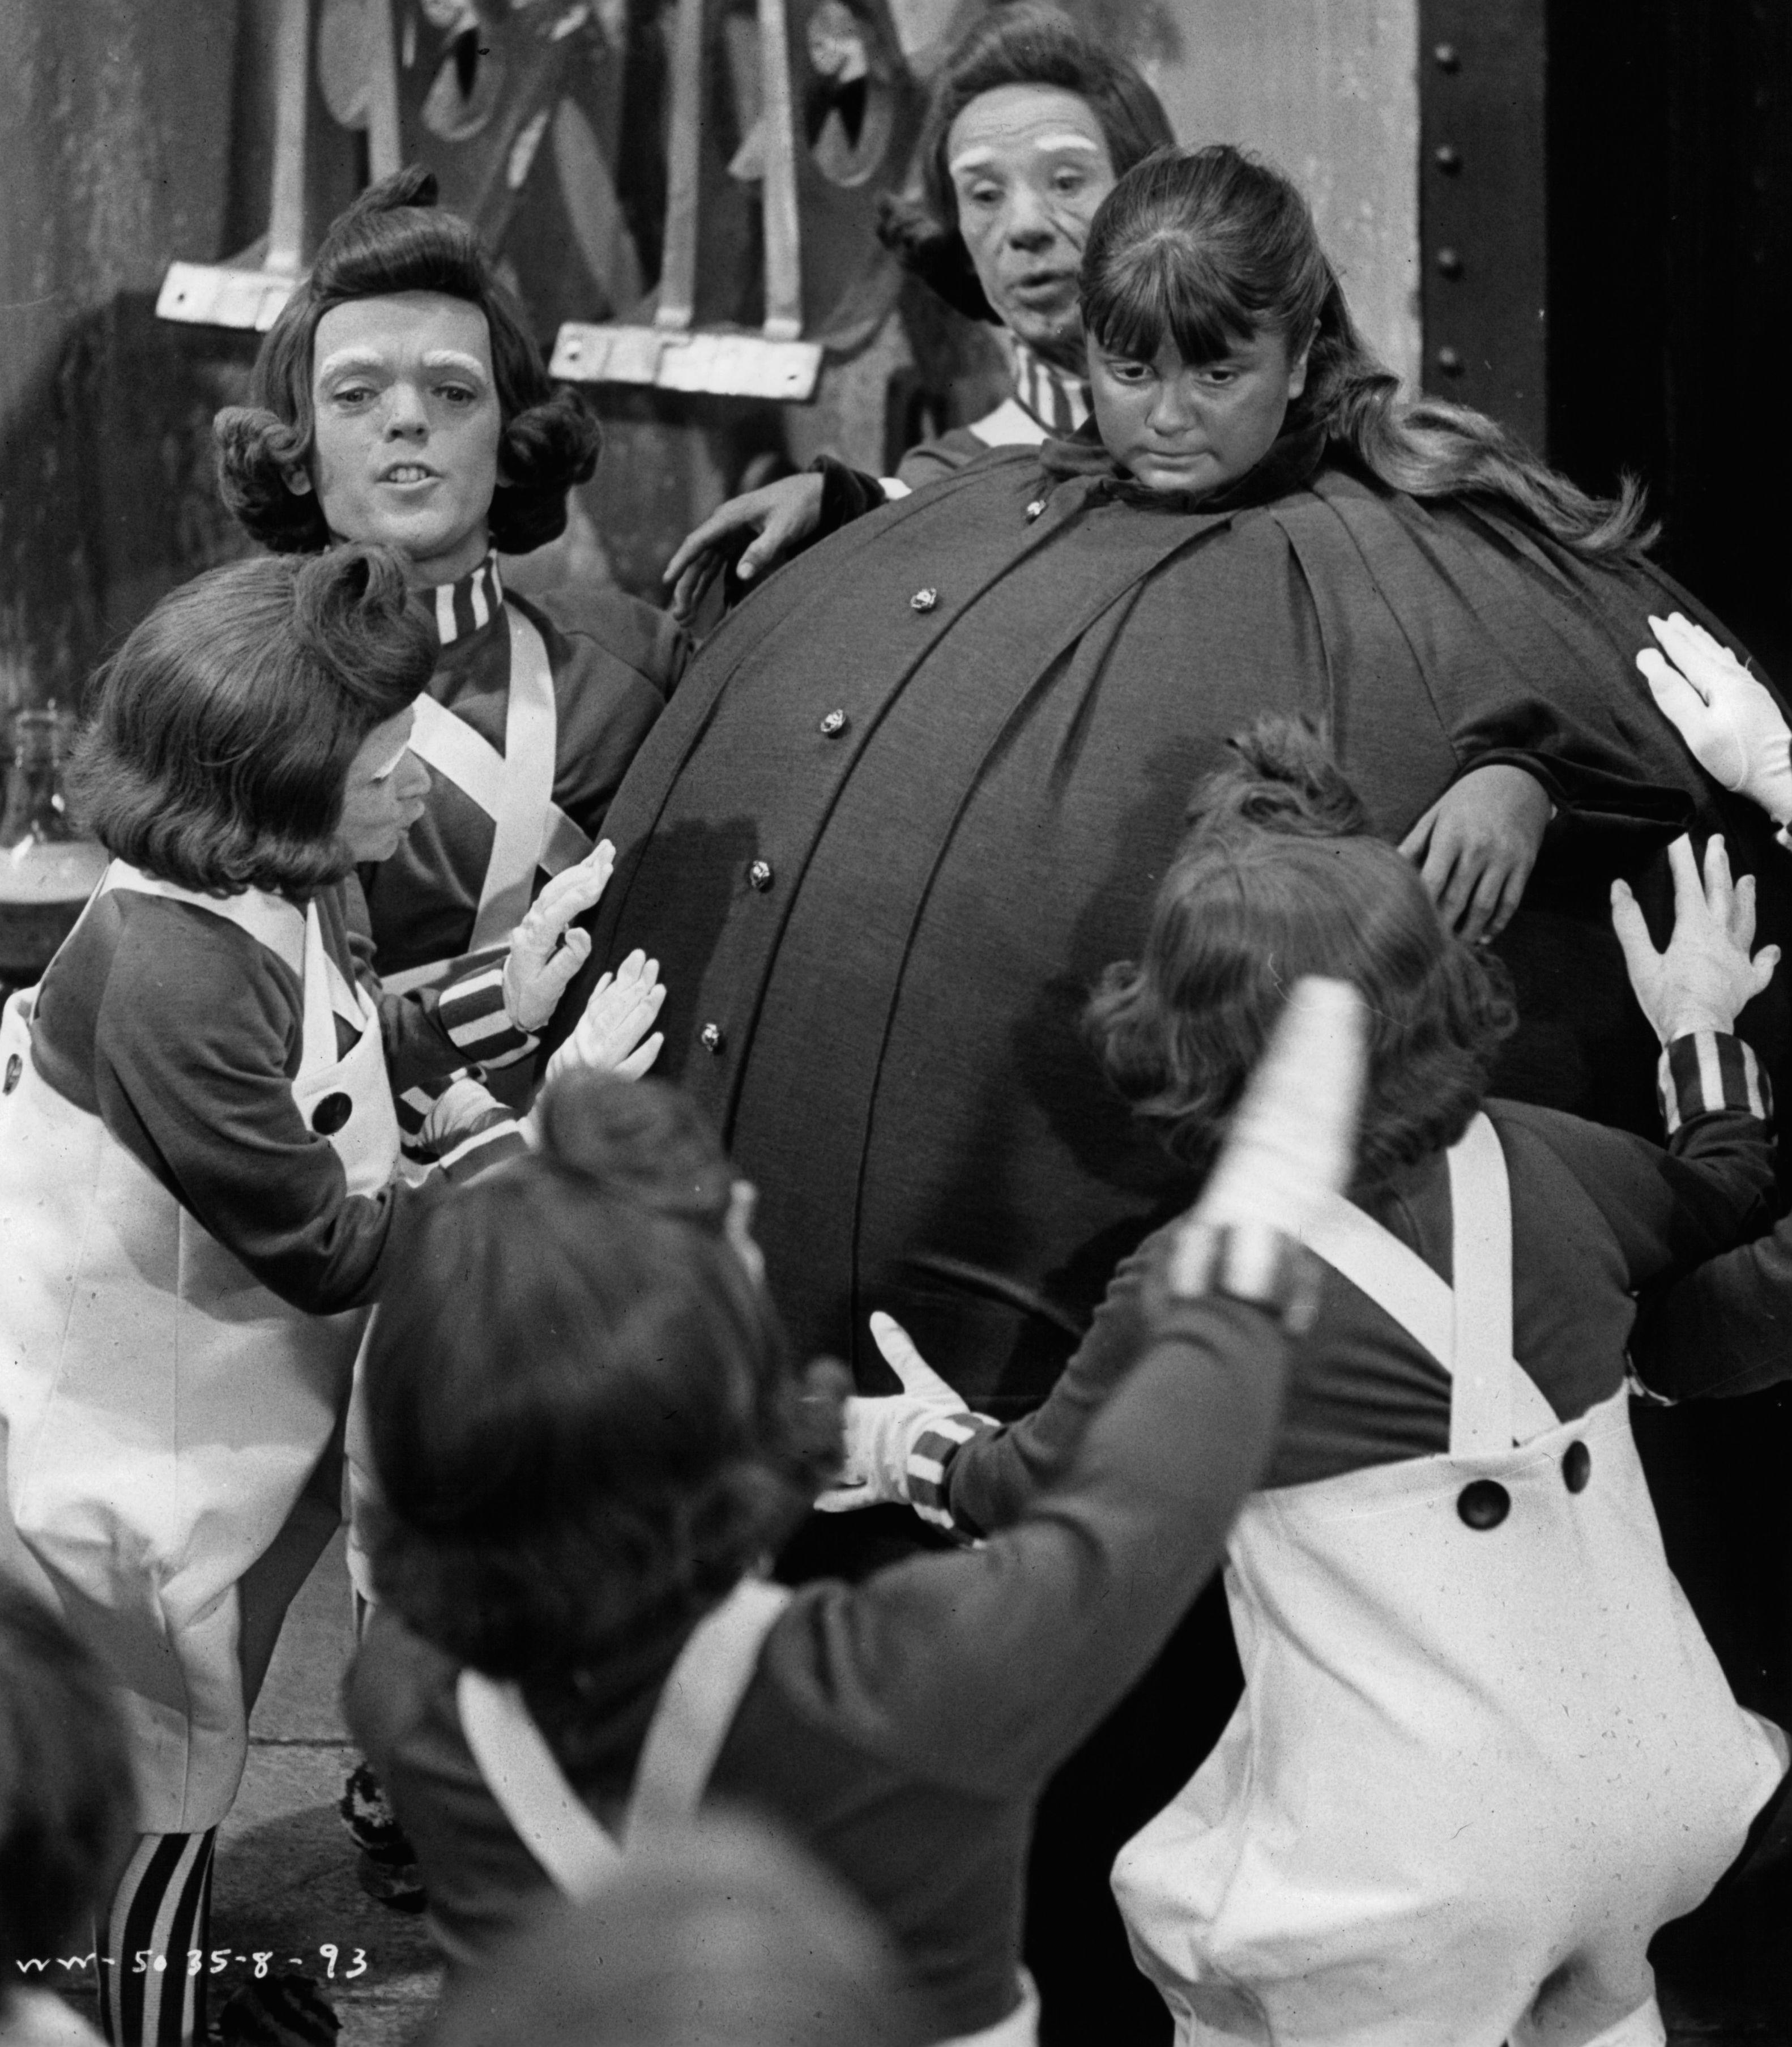 Nickerson as Violet Beauregarde in Willy Wonka & The Chocolate Factory (Credit: Paramount/Getty)